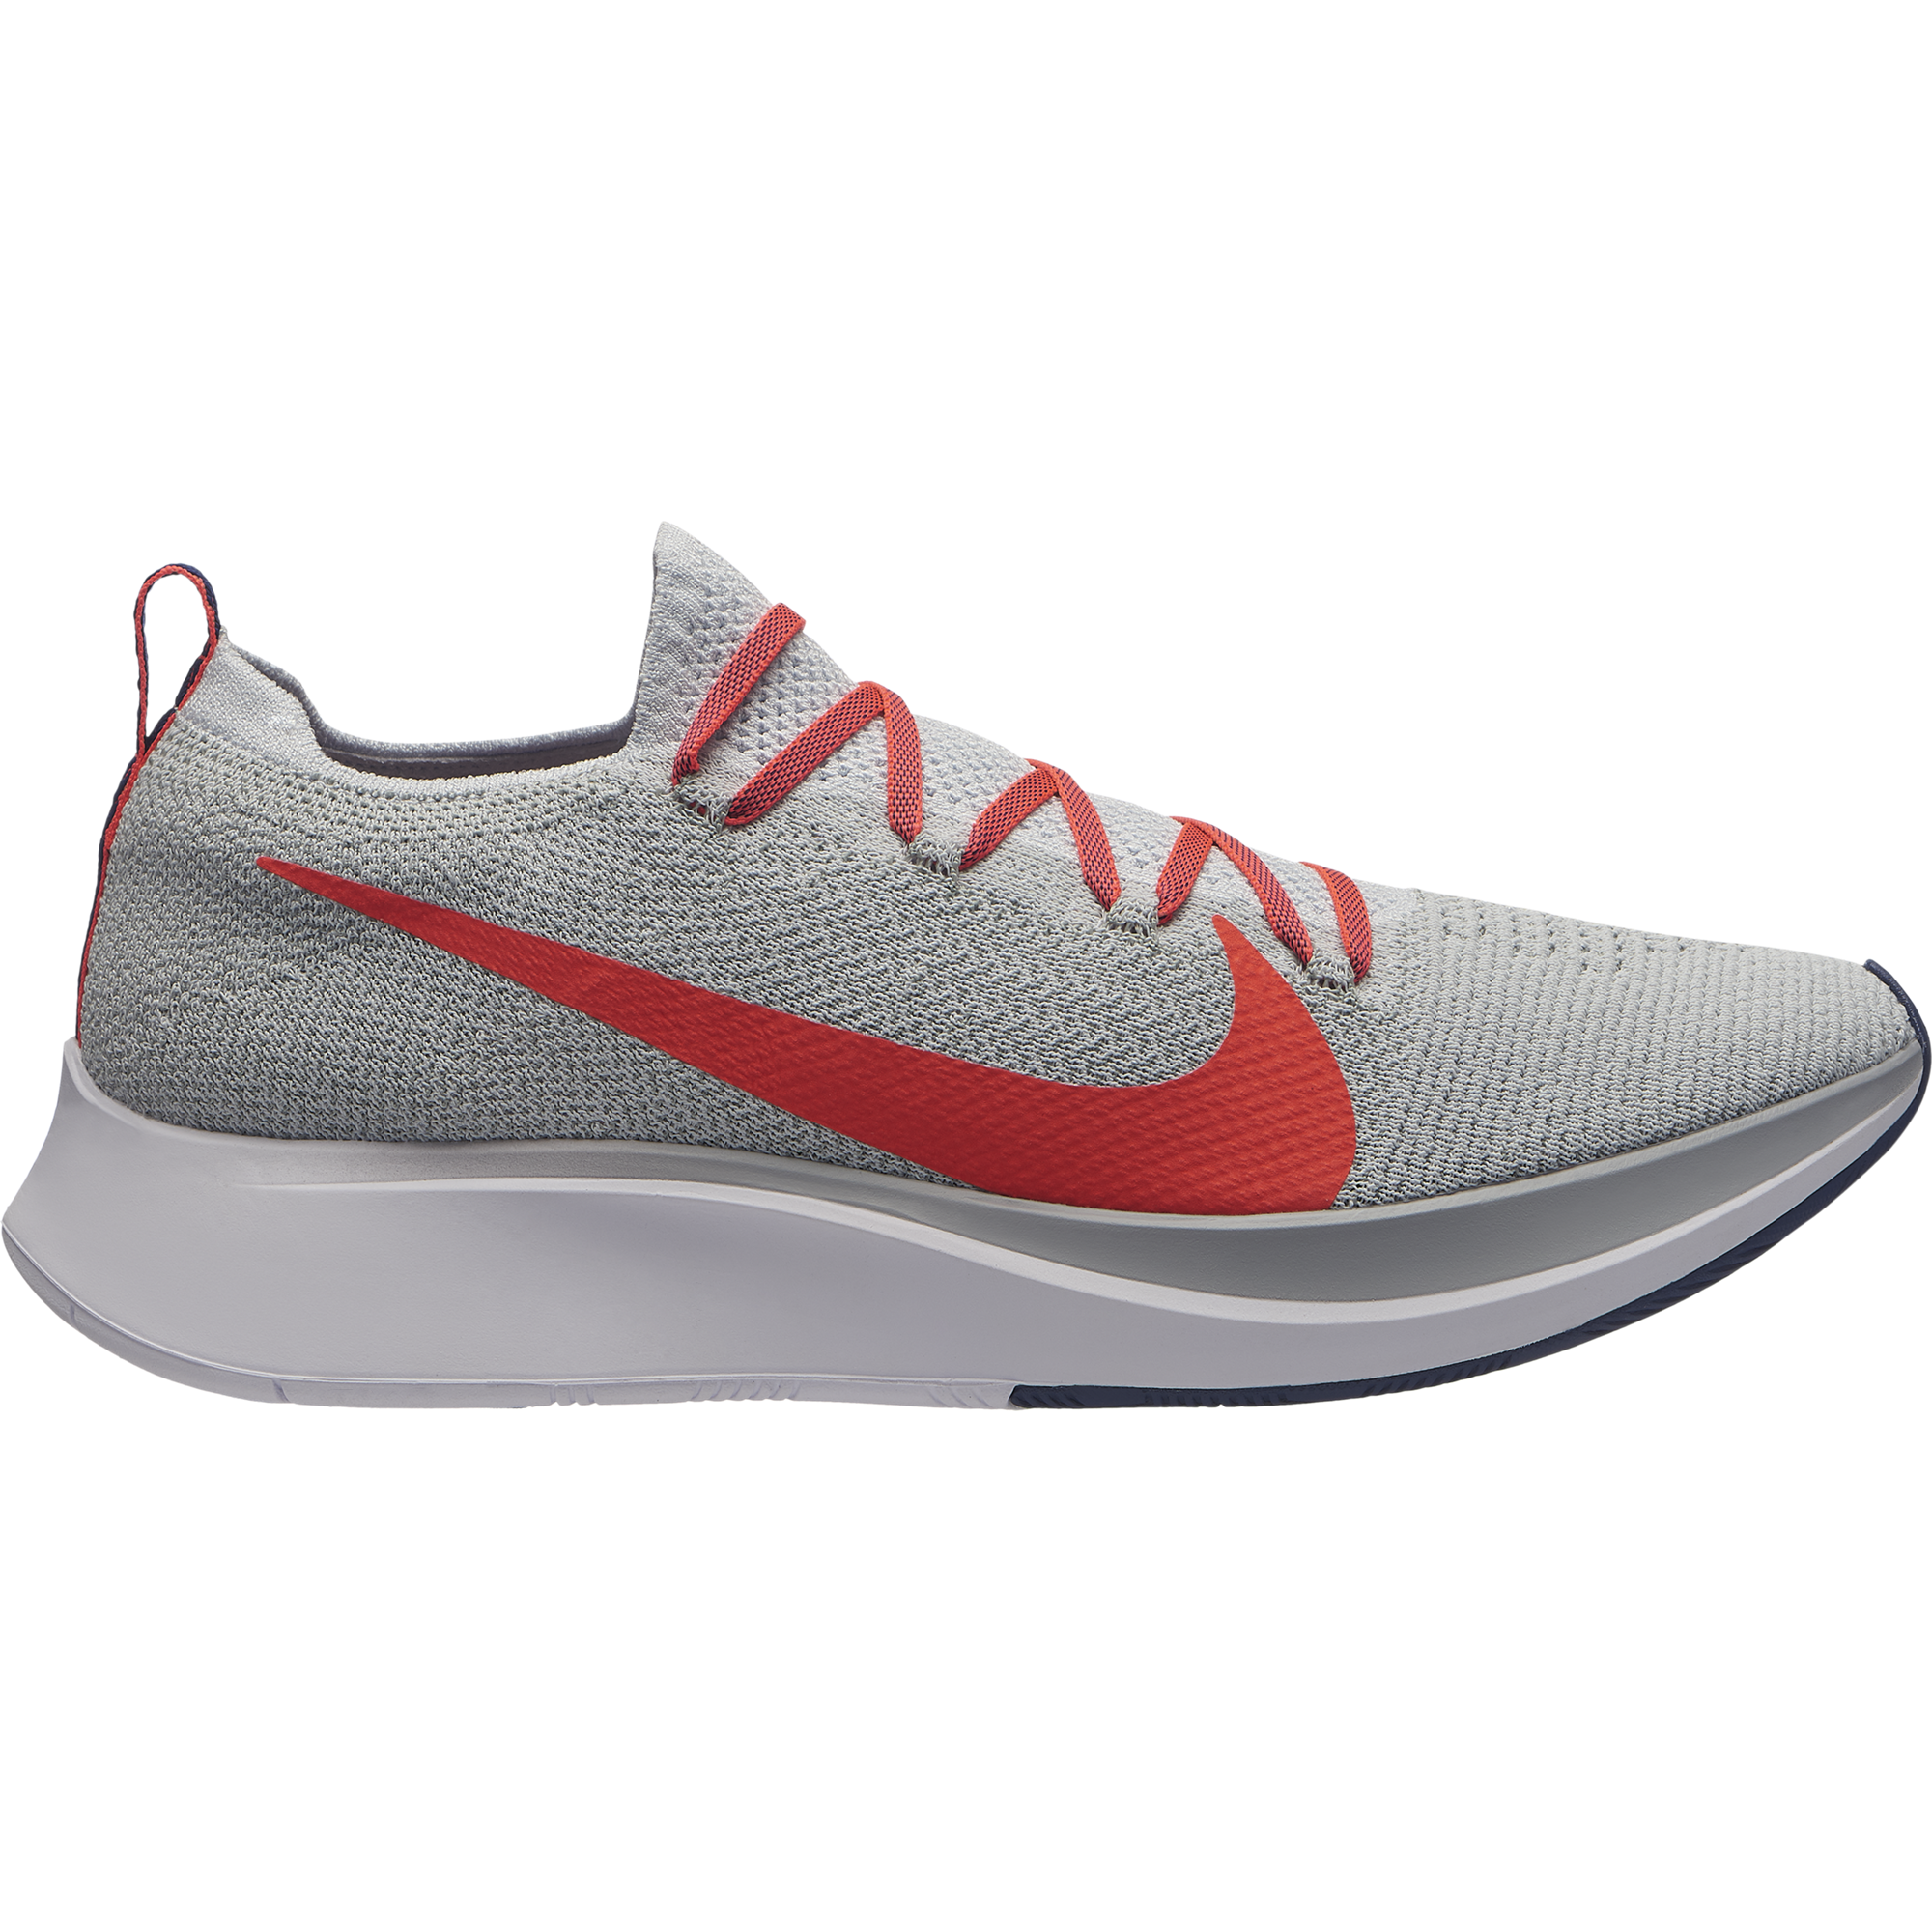 45ddb264d1099 Men s Zoom Fly FlyKnit Running Shoe - Pure Platinum Bright Crimson – Gazelle  Sports